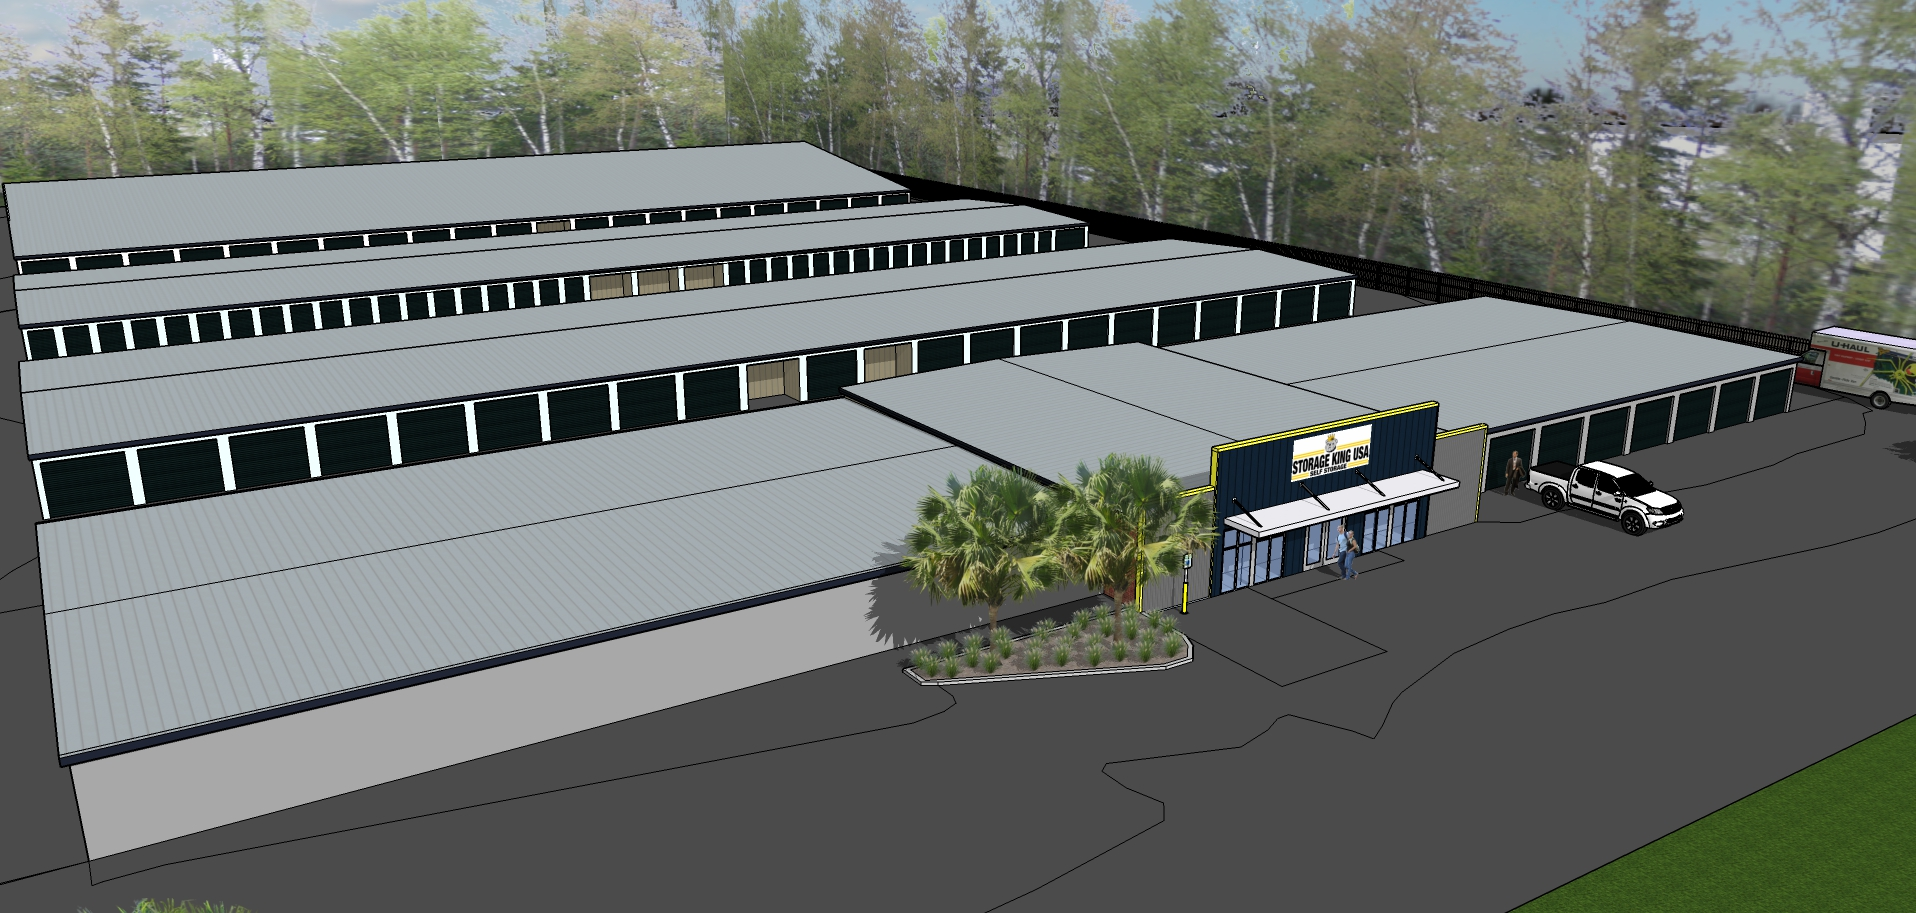 Moncks Corner, SC – 37,000 square foot expansion planned